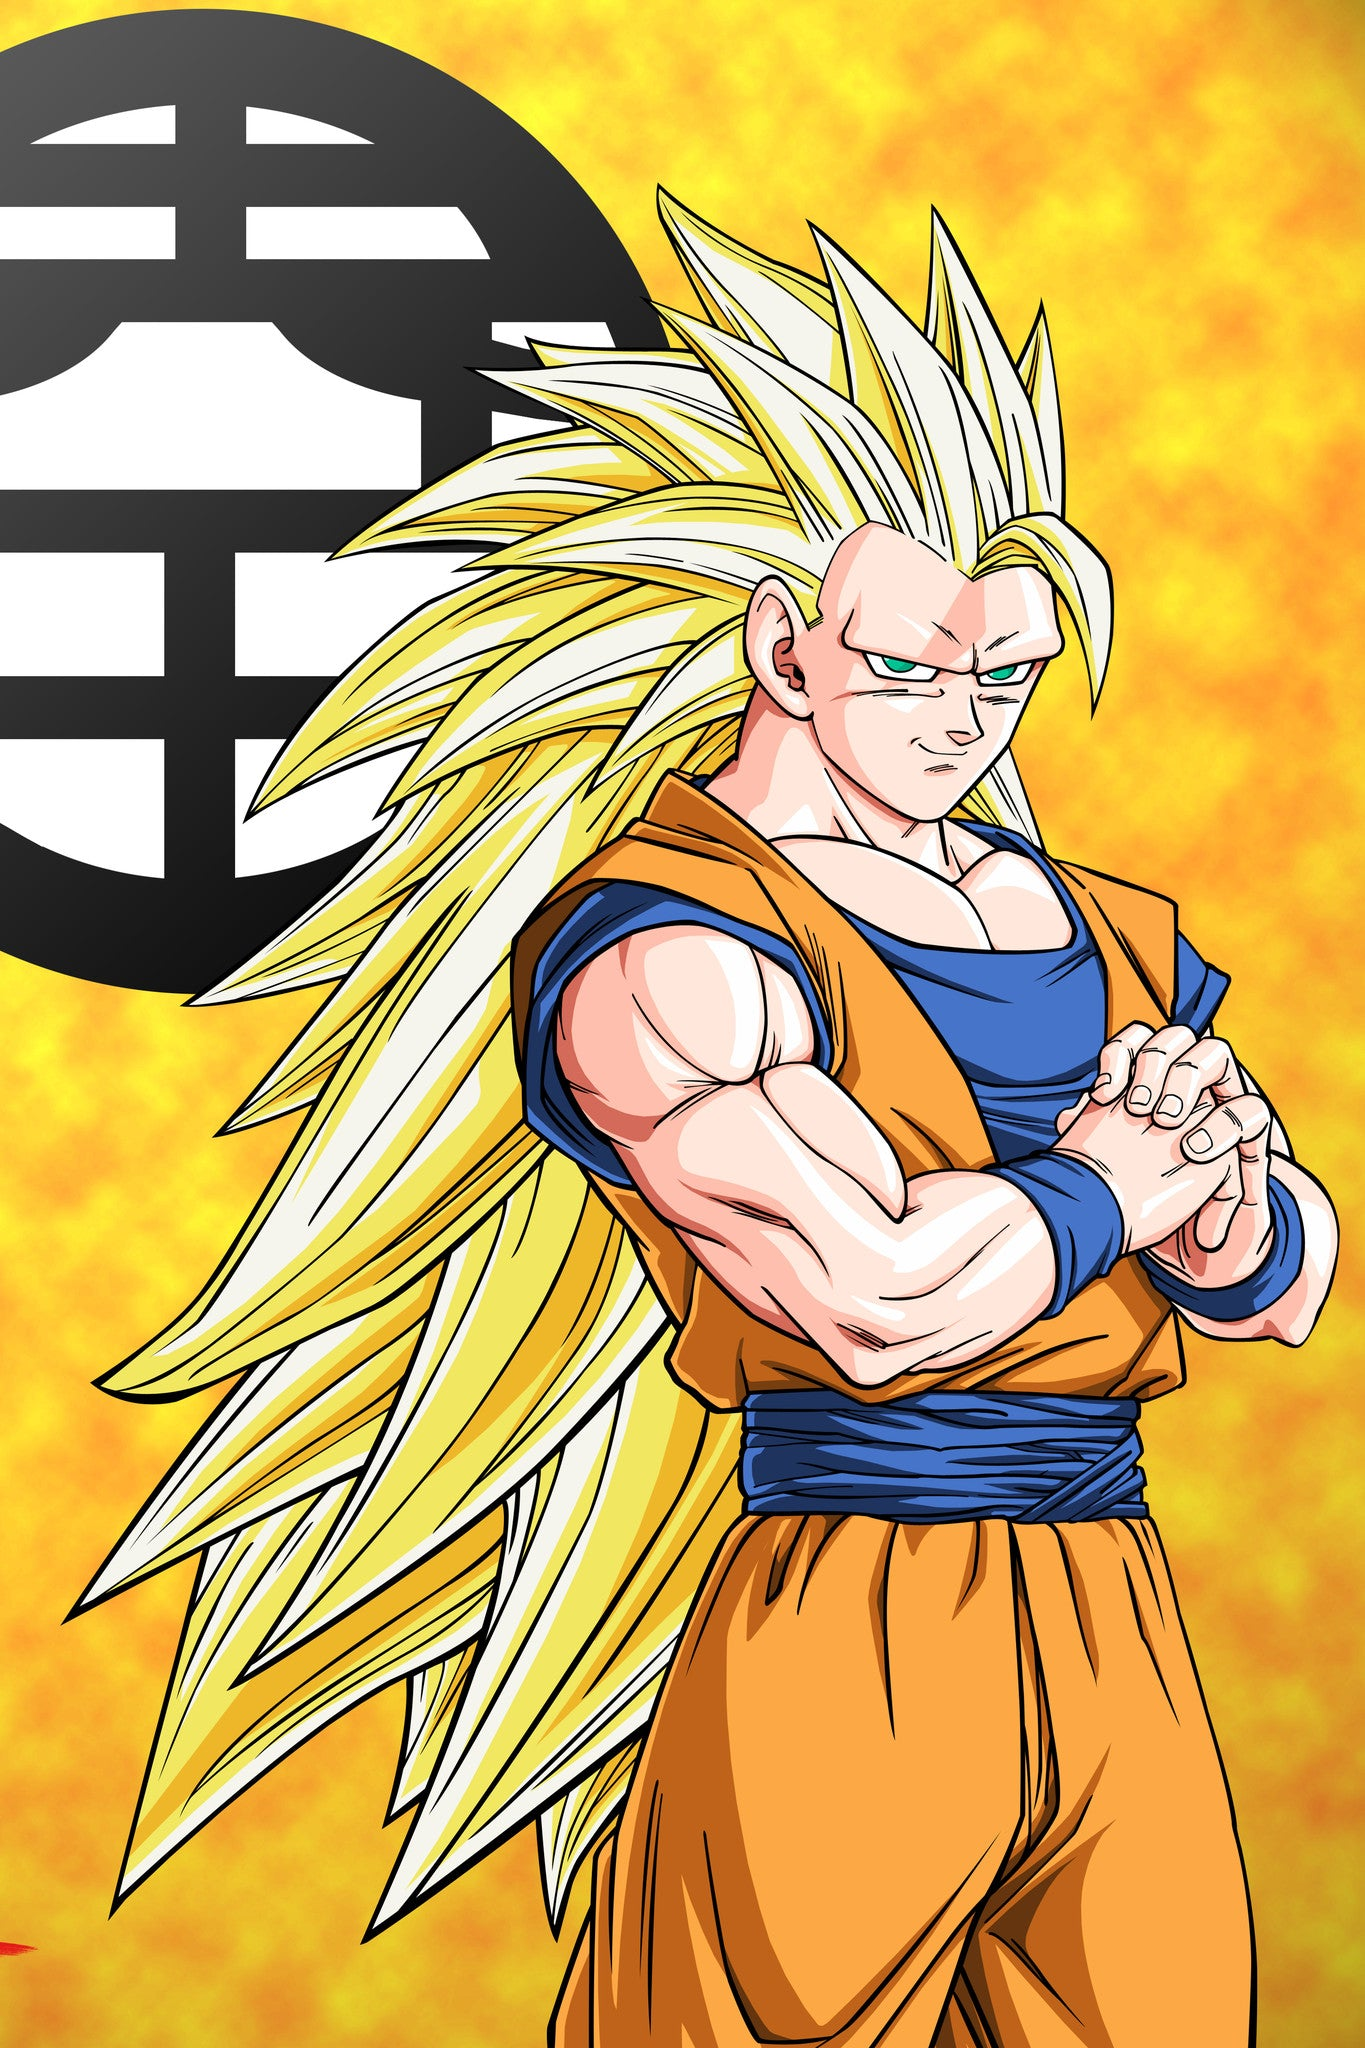 anime dargon ball z goku super saiyan 3 poster in india silly punter